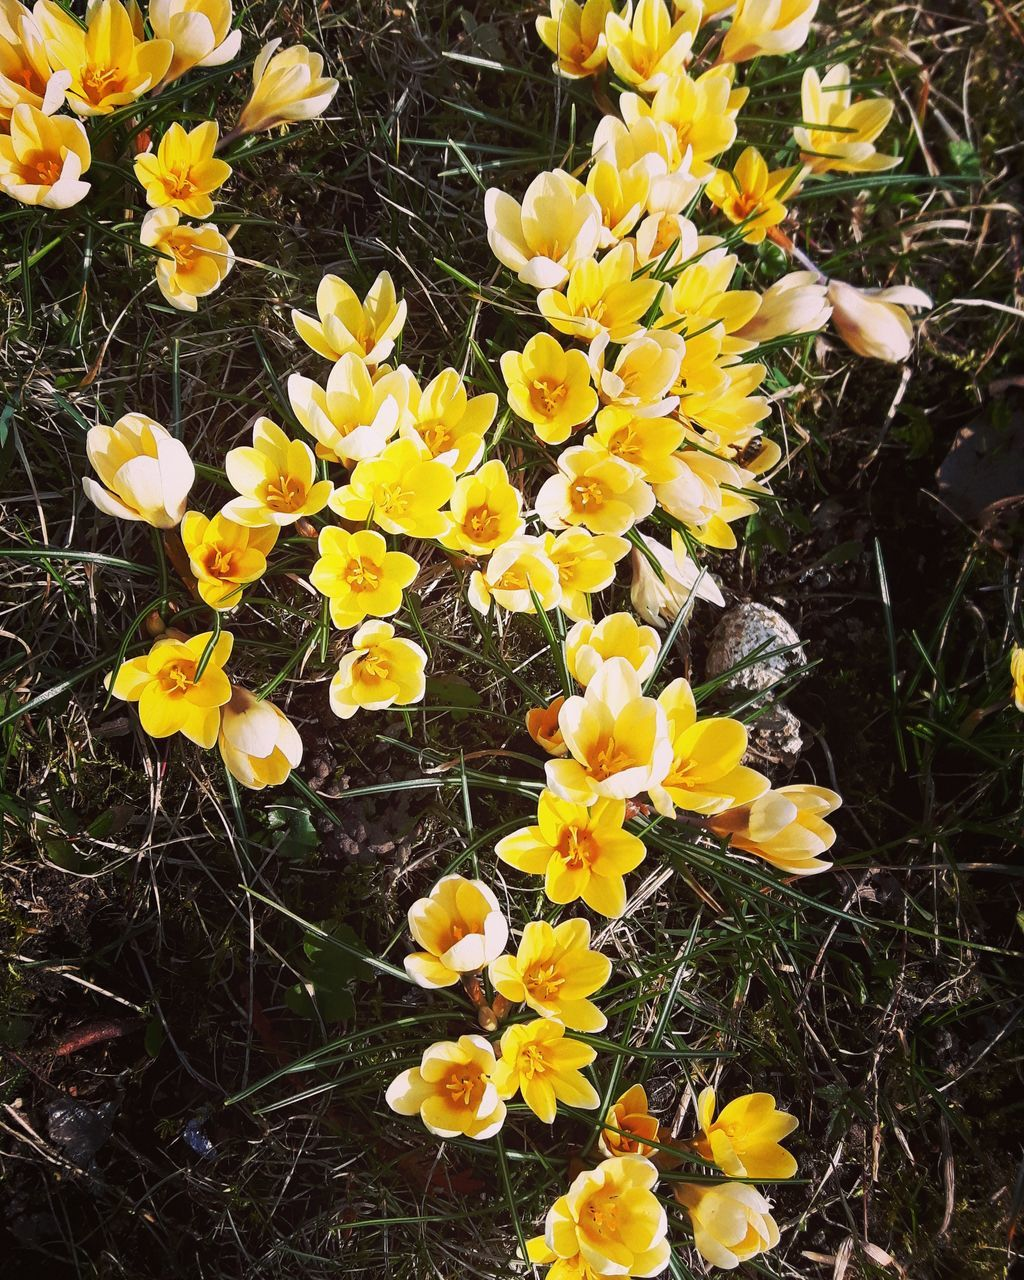 flower, yellow, fragility, growth, petal, plant, nature, freshness, beauty in nature, flower head, outdoors, blooming, field, day, no people, close-up, crocus